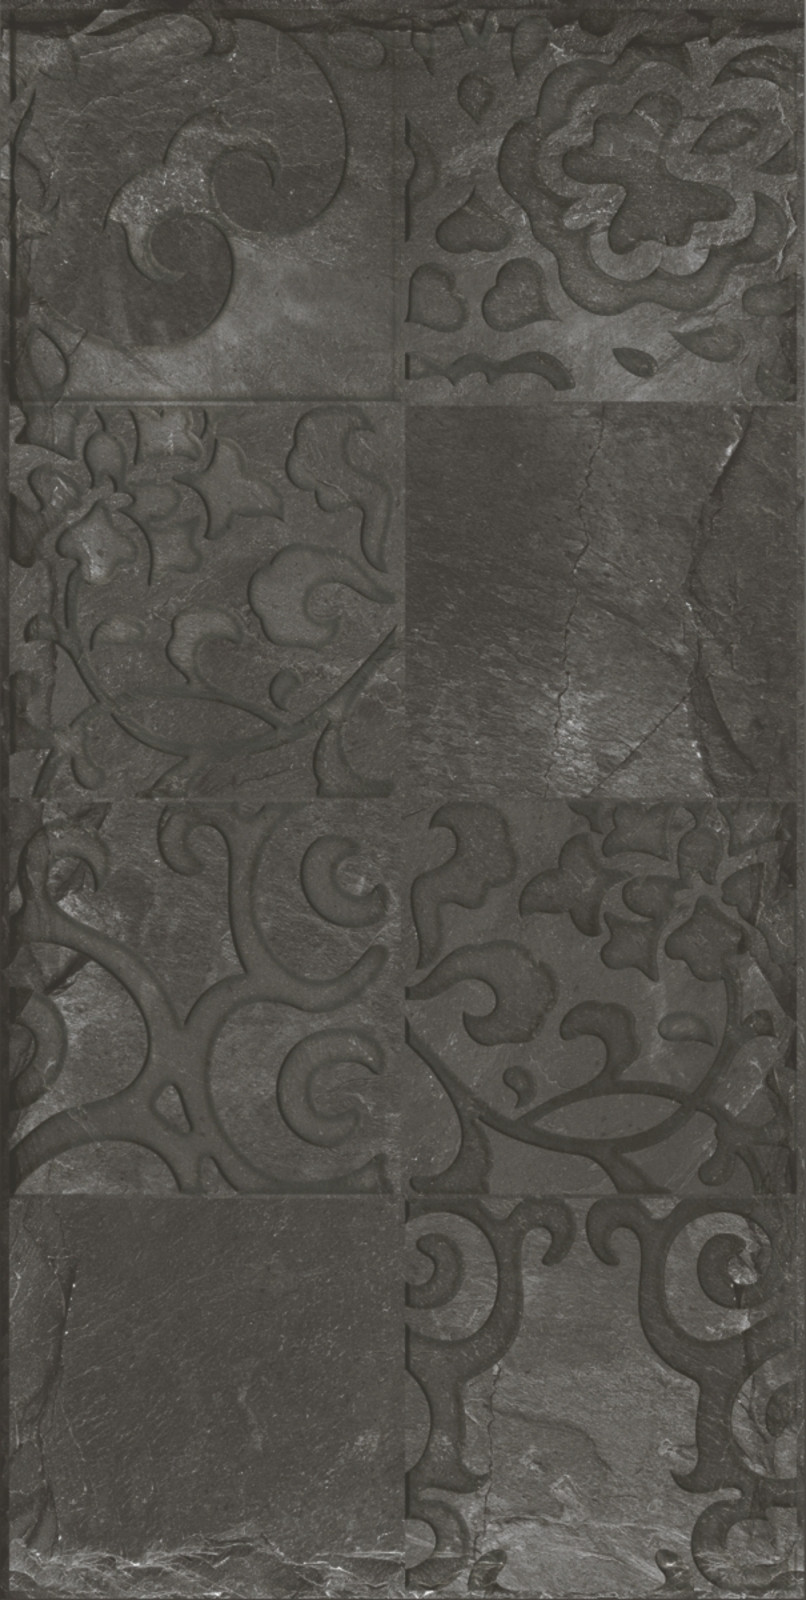 Seinälaatta Caisla Luxury Sobo Nero Decor, 300x600 mm, tummanharmaa